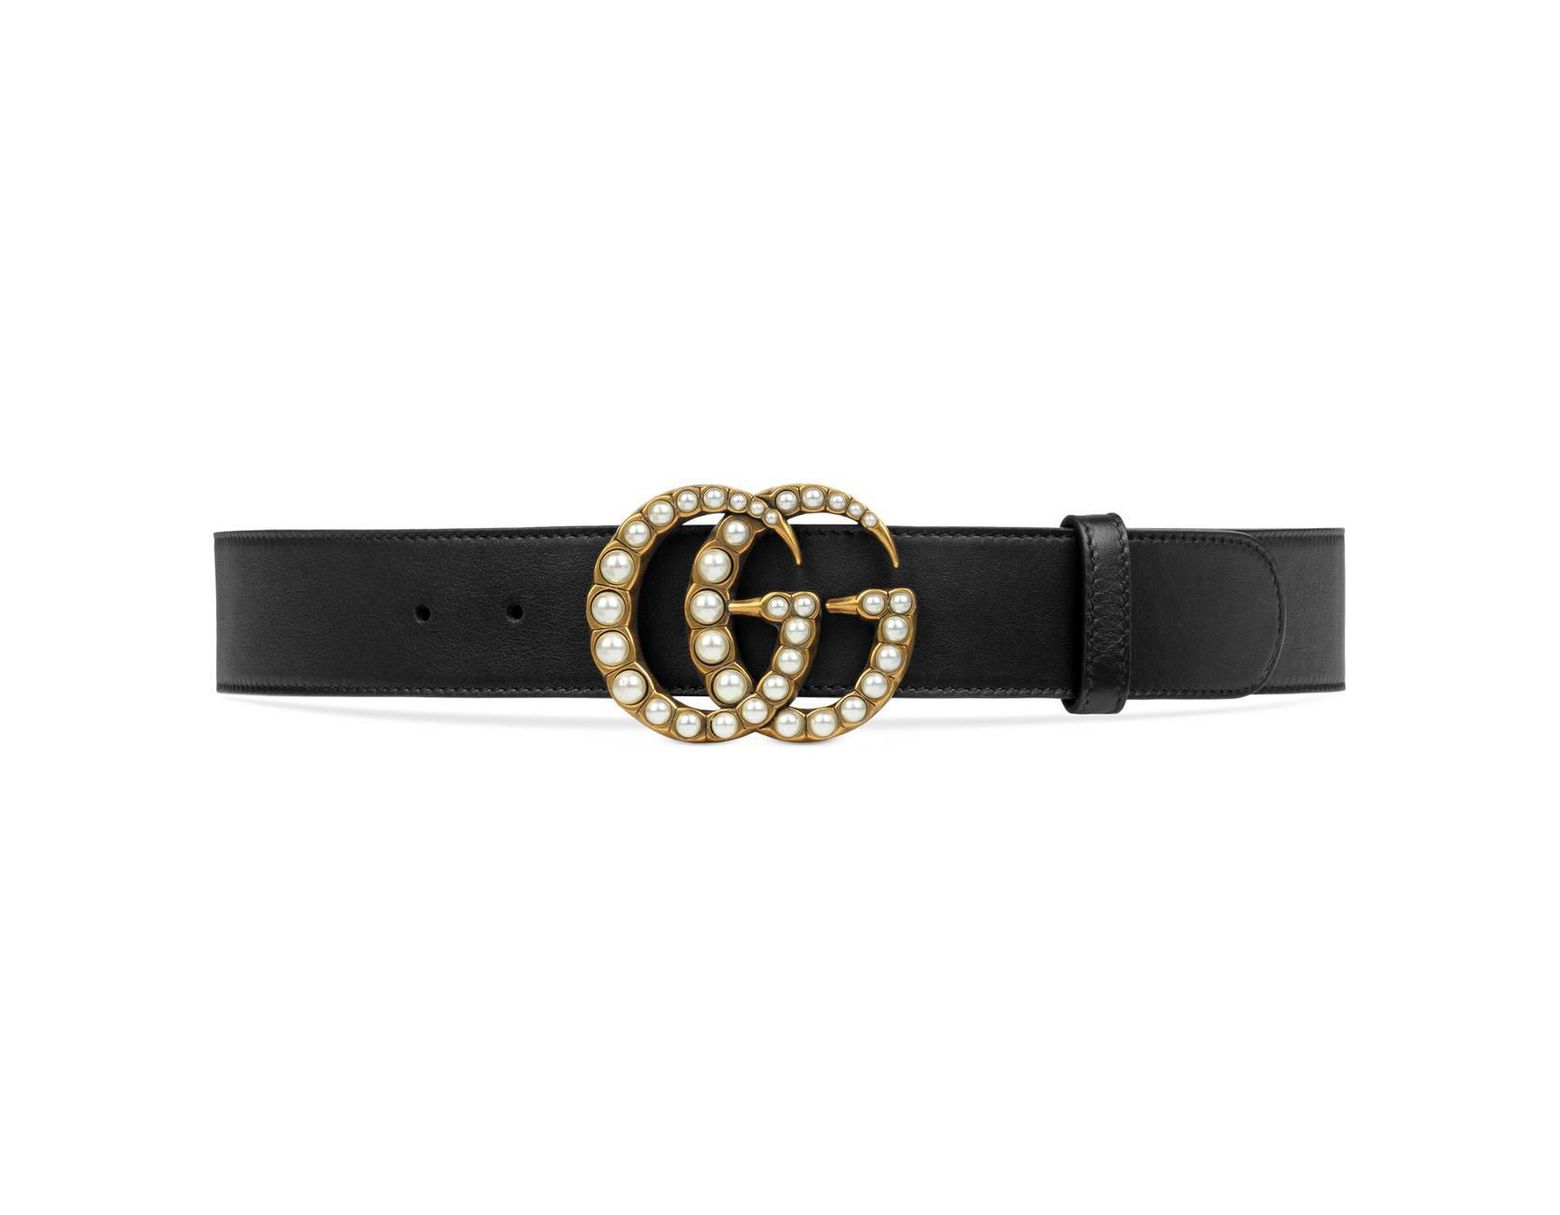 91e889674cd Lyst - Gucci Leather Belt With Pearl Double G in Black - Save 7%